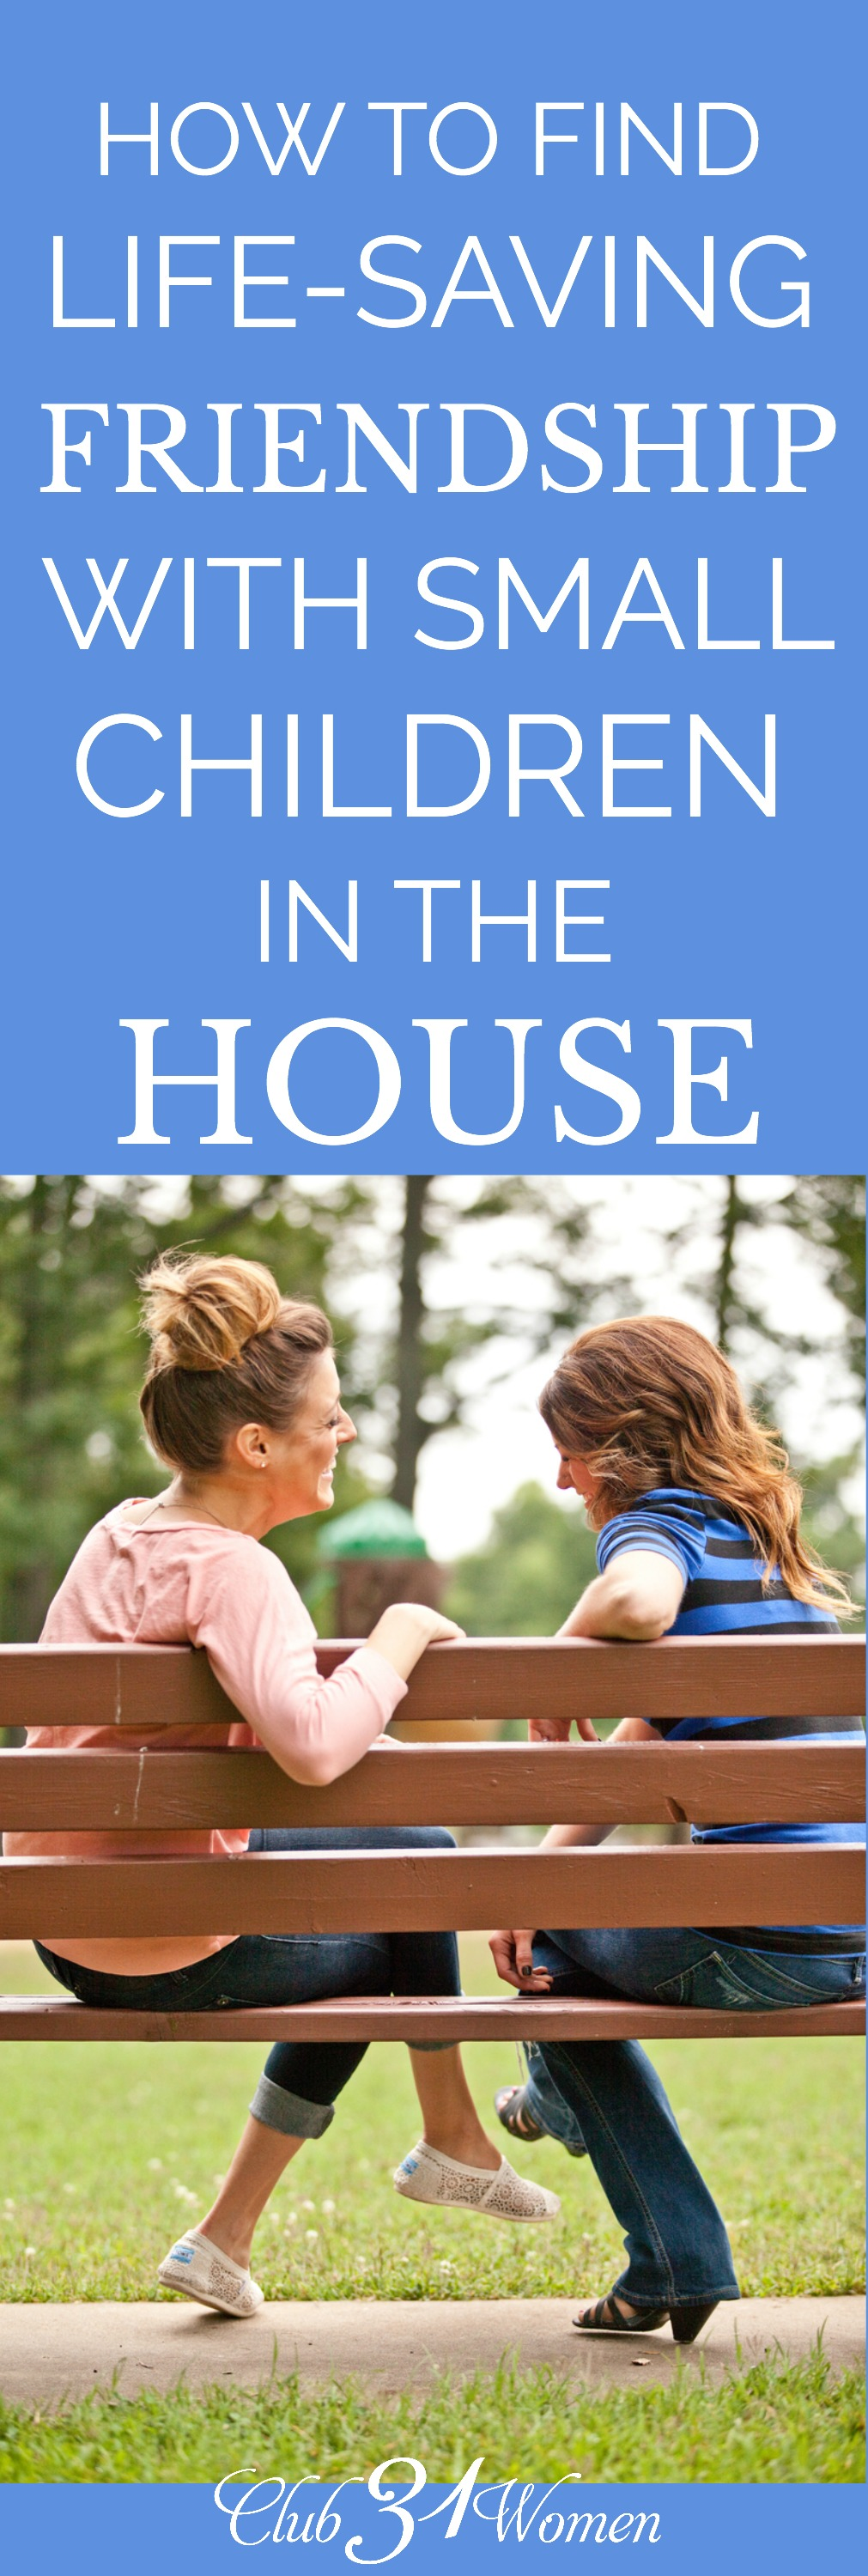 Friendships are essential, especially when you have small children. How can you make space for friendship while pouring into young children, too? How to Find Life-Saving Friendship With Small Children in the House via @Club31Women